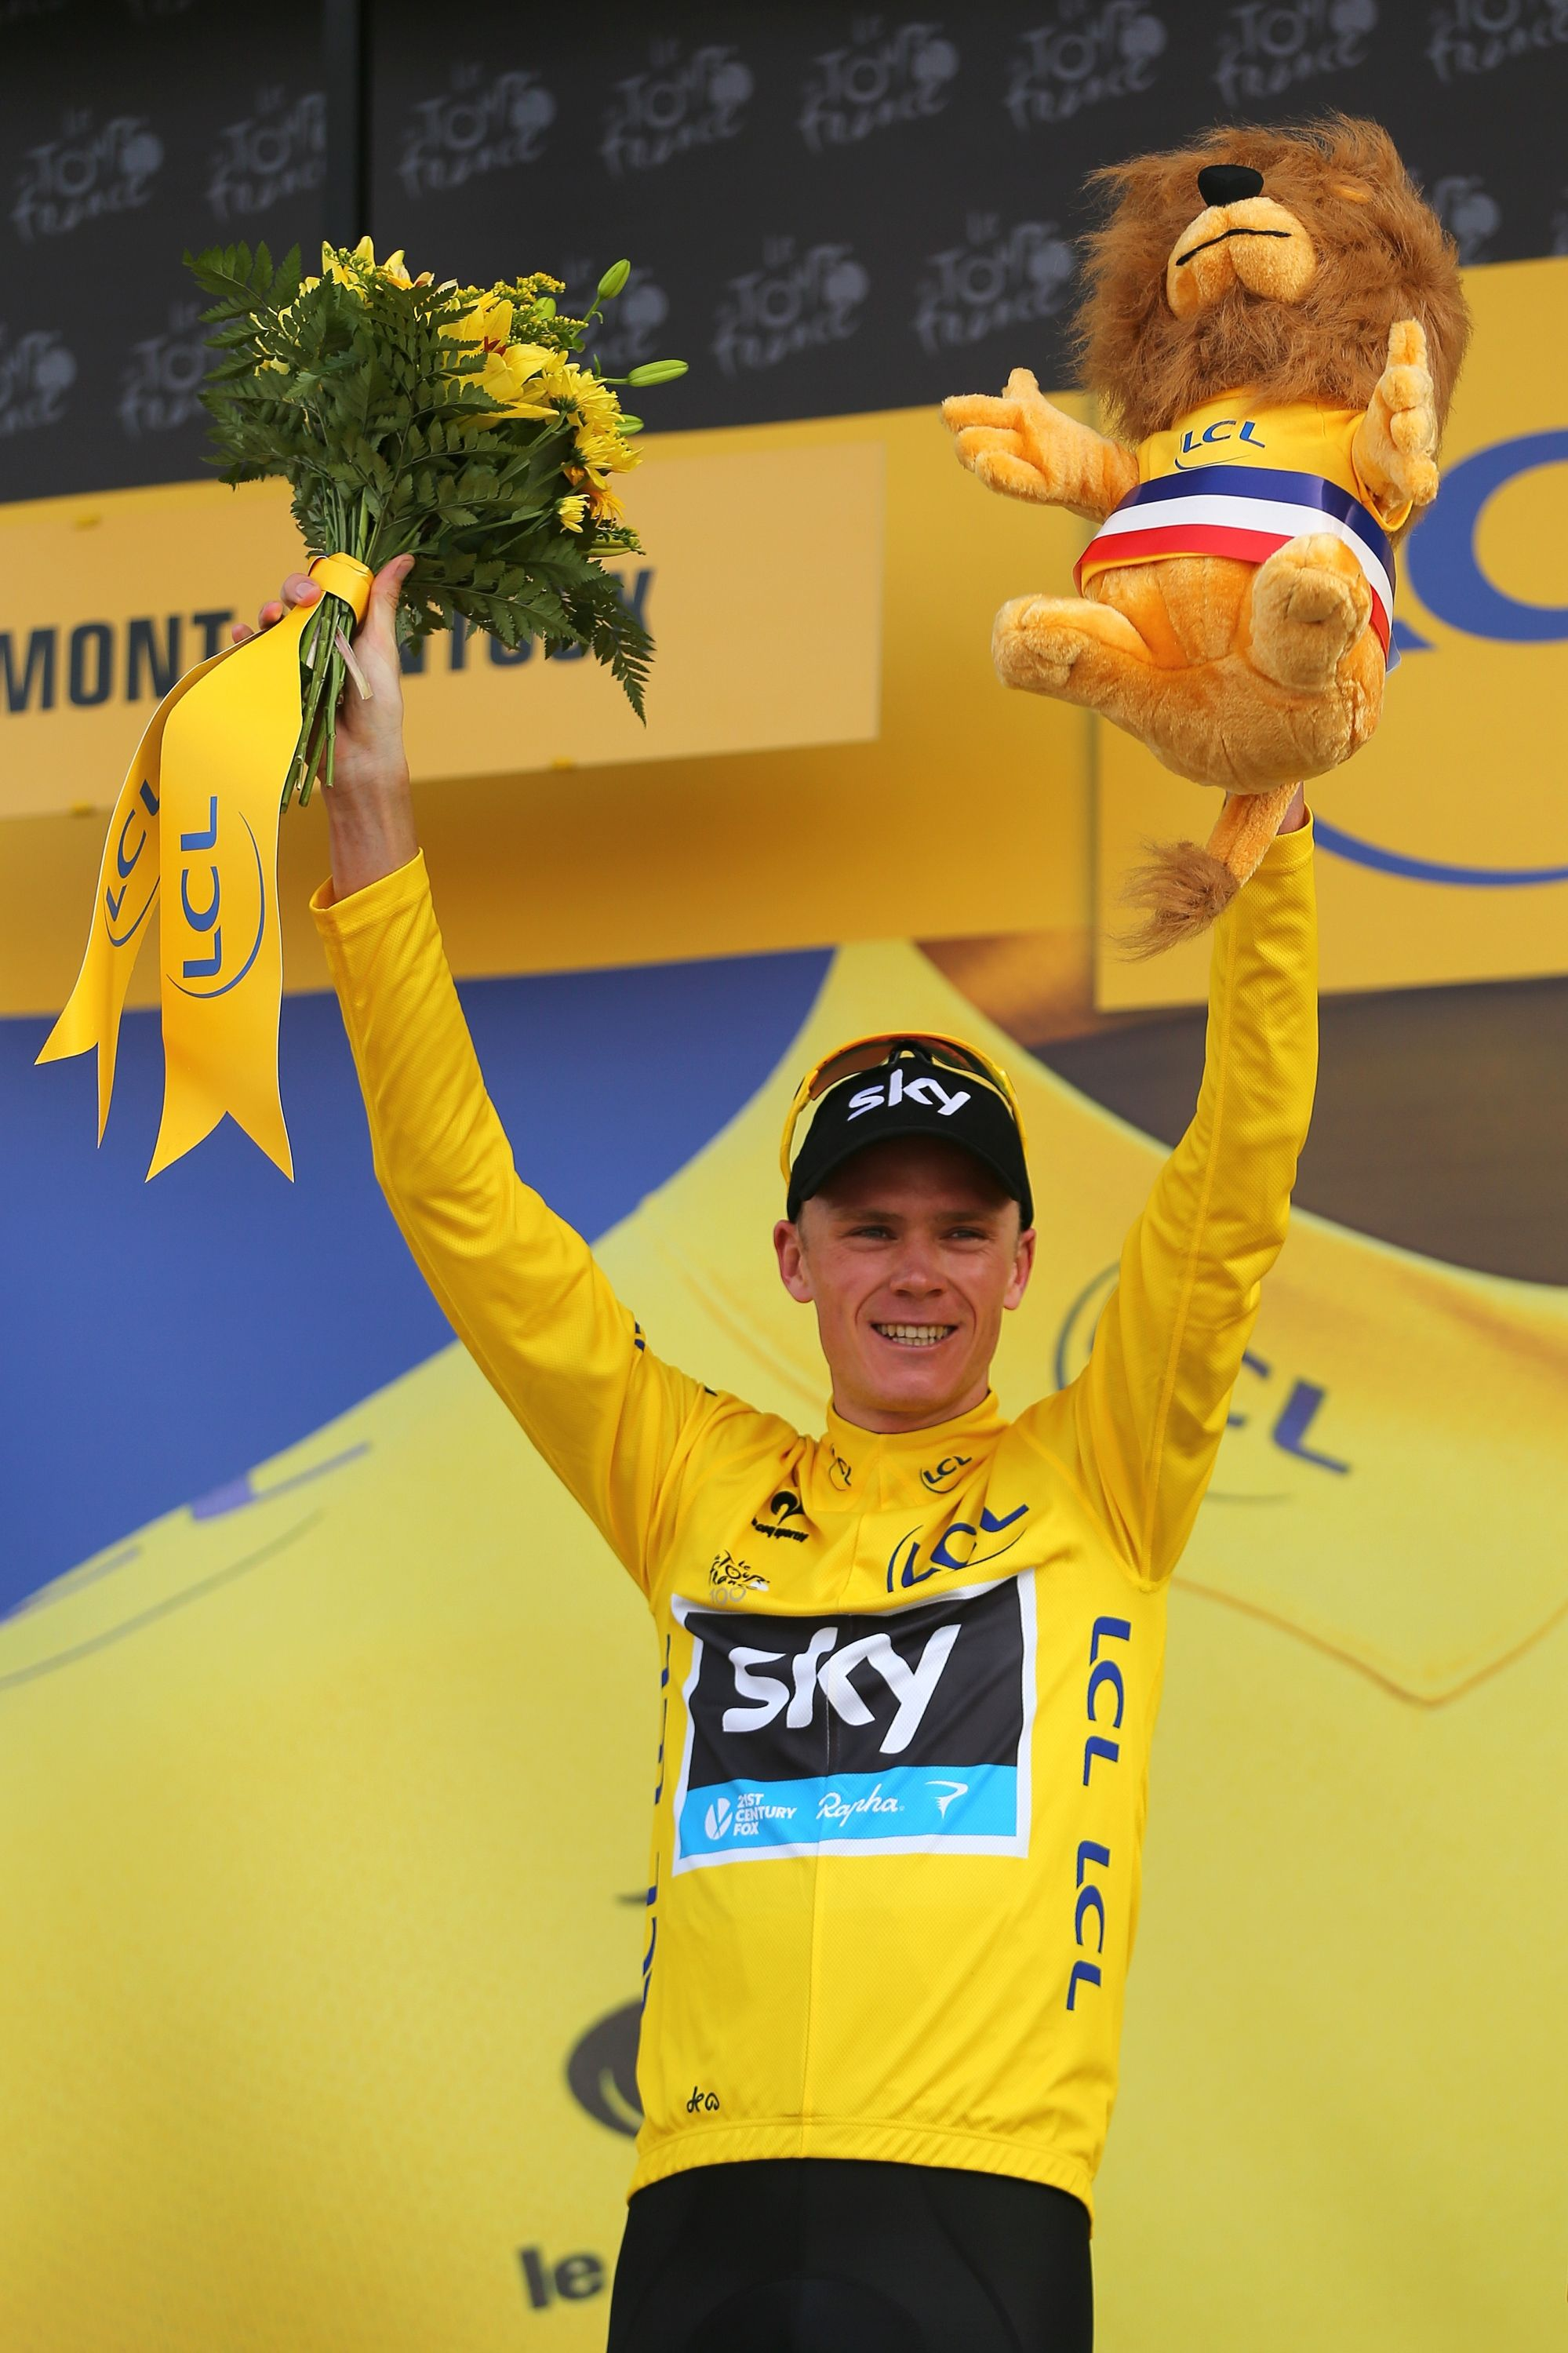 MONT VENTOUX, FRANCE - JULY 14: Current race leader and wearer of the Maillot Jaune, Chris Froome of Great Britain and SKY Procycling celebrates on the podium after winning stage fifteen of the 2013 Tour de France, a 242.5KM road stage from Givors to Mont Ventoux, on July 14, 2013 on Mont Ventoux, France. (Photo by Bryn Lennon/Getty Images)